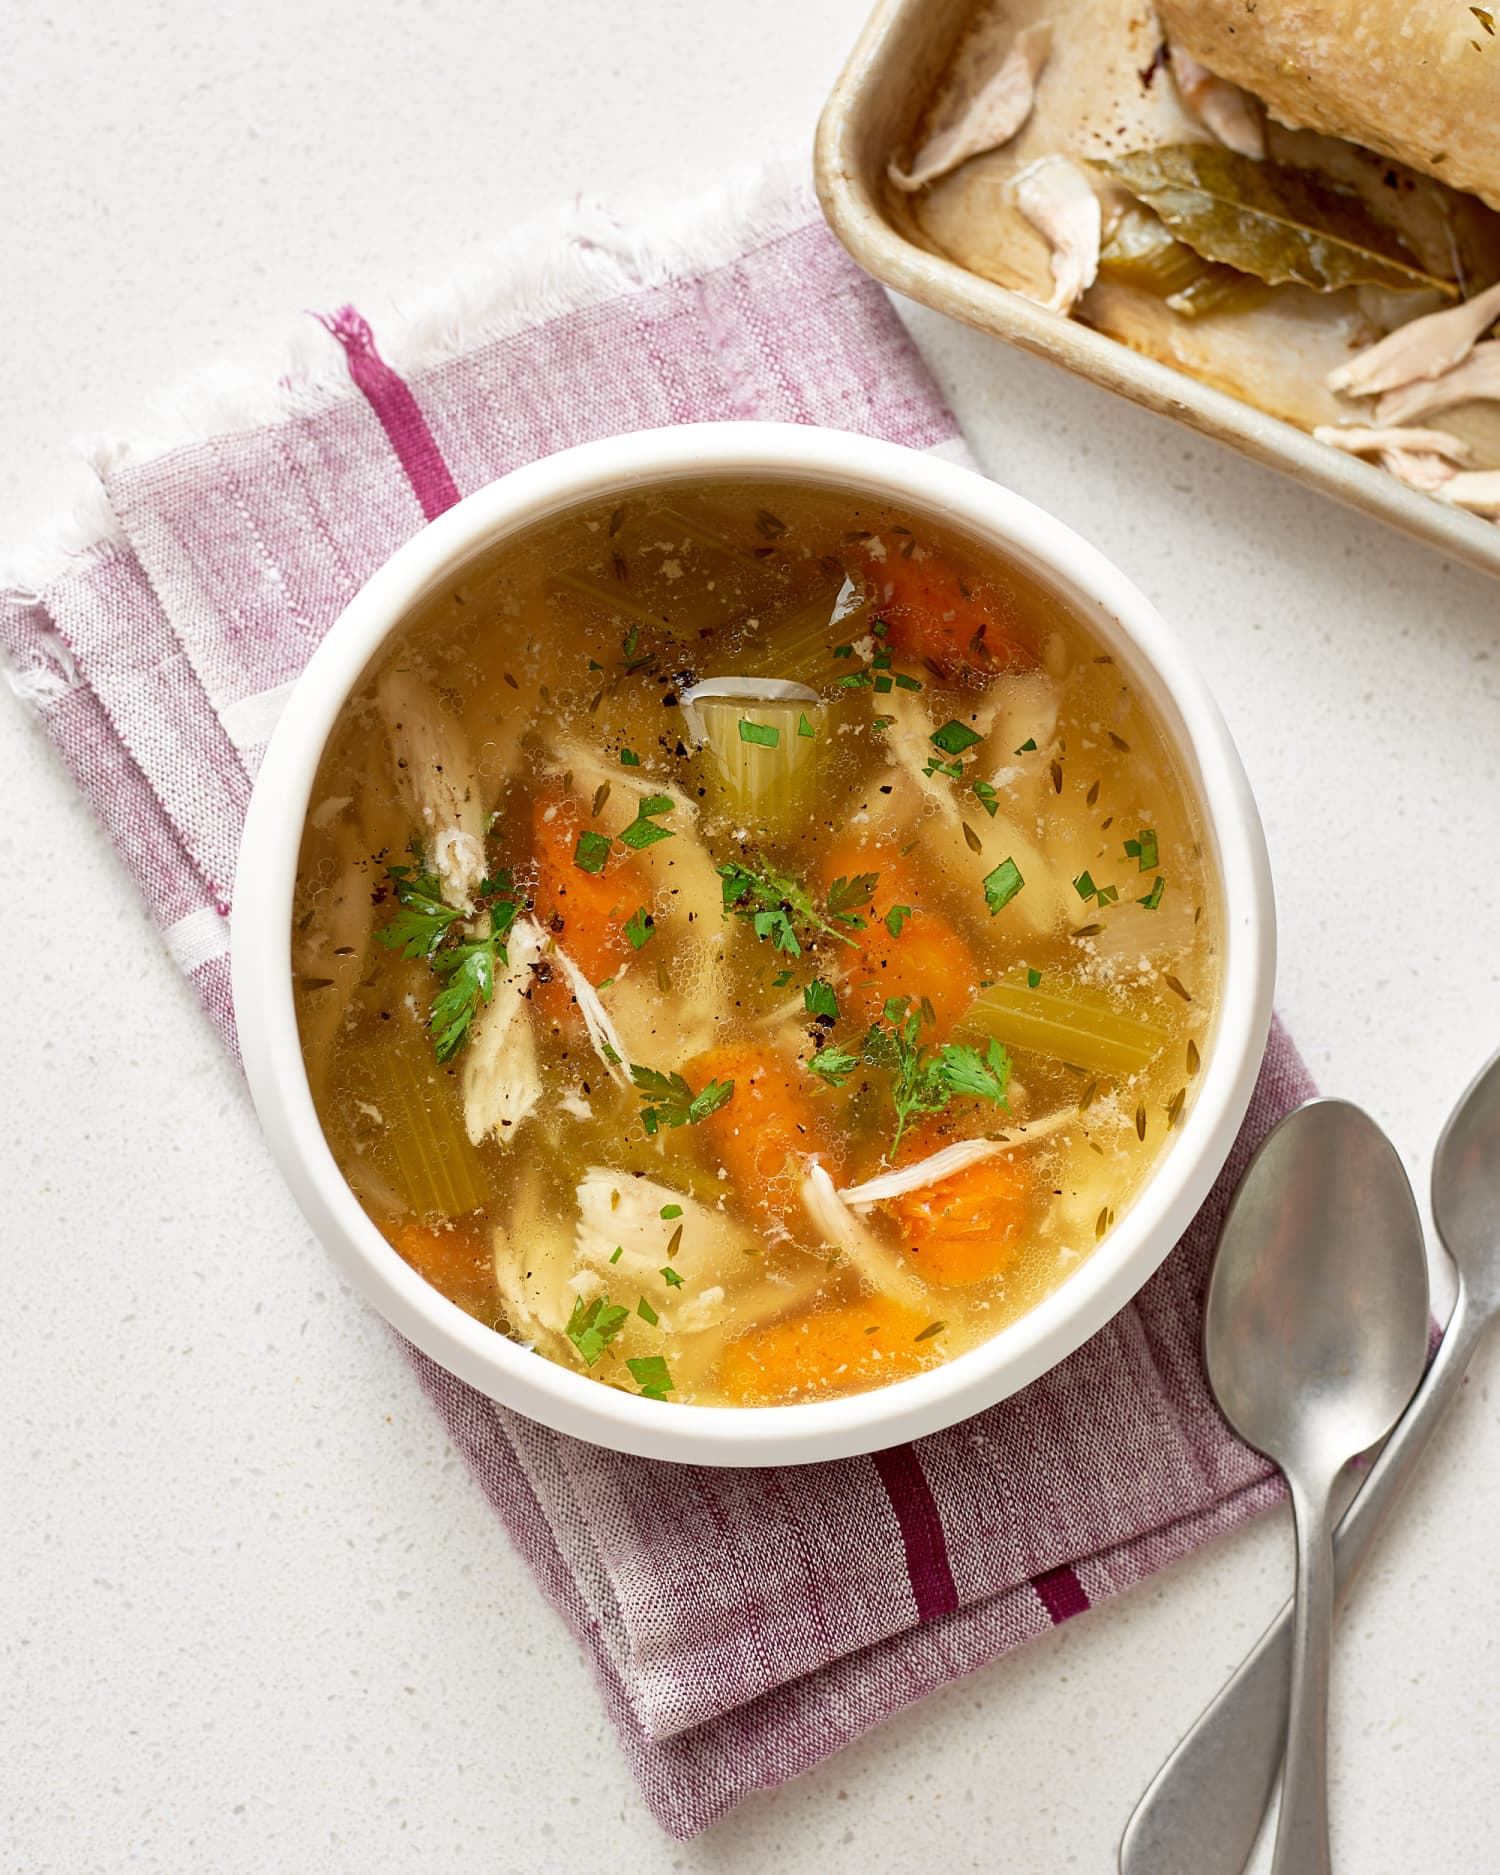 Recipe: Slow Cooker Whole Chicken Soup